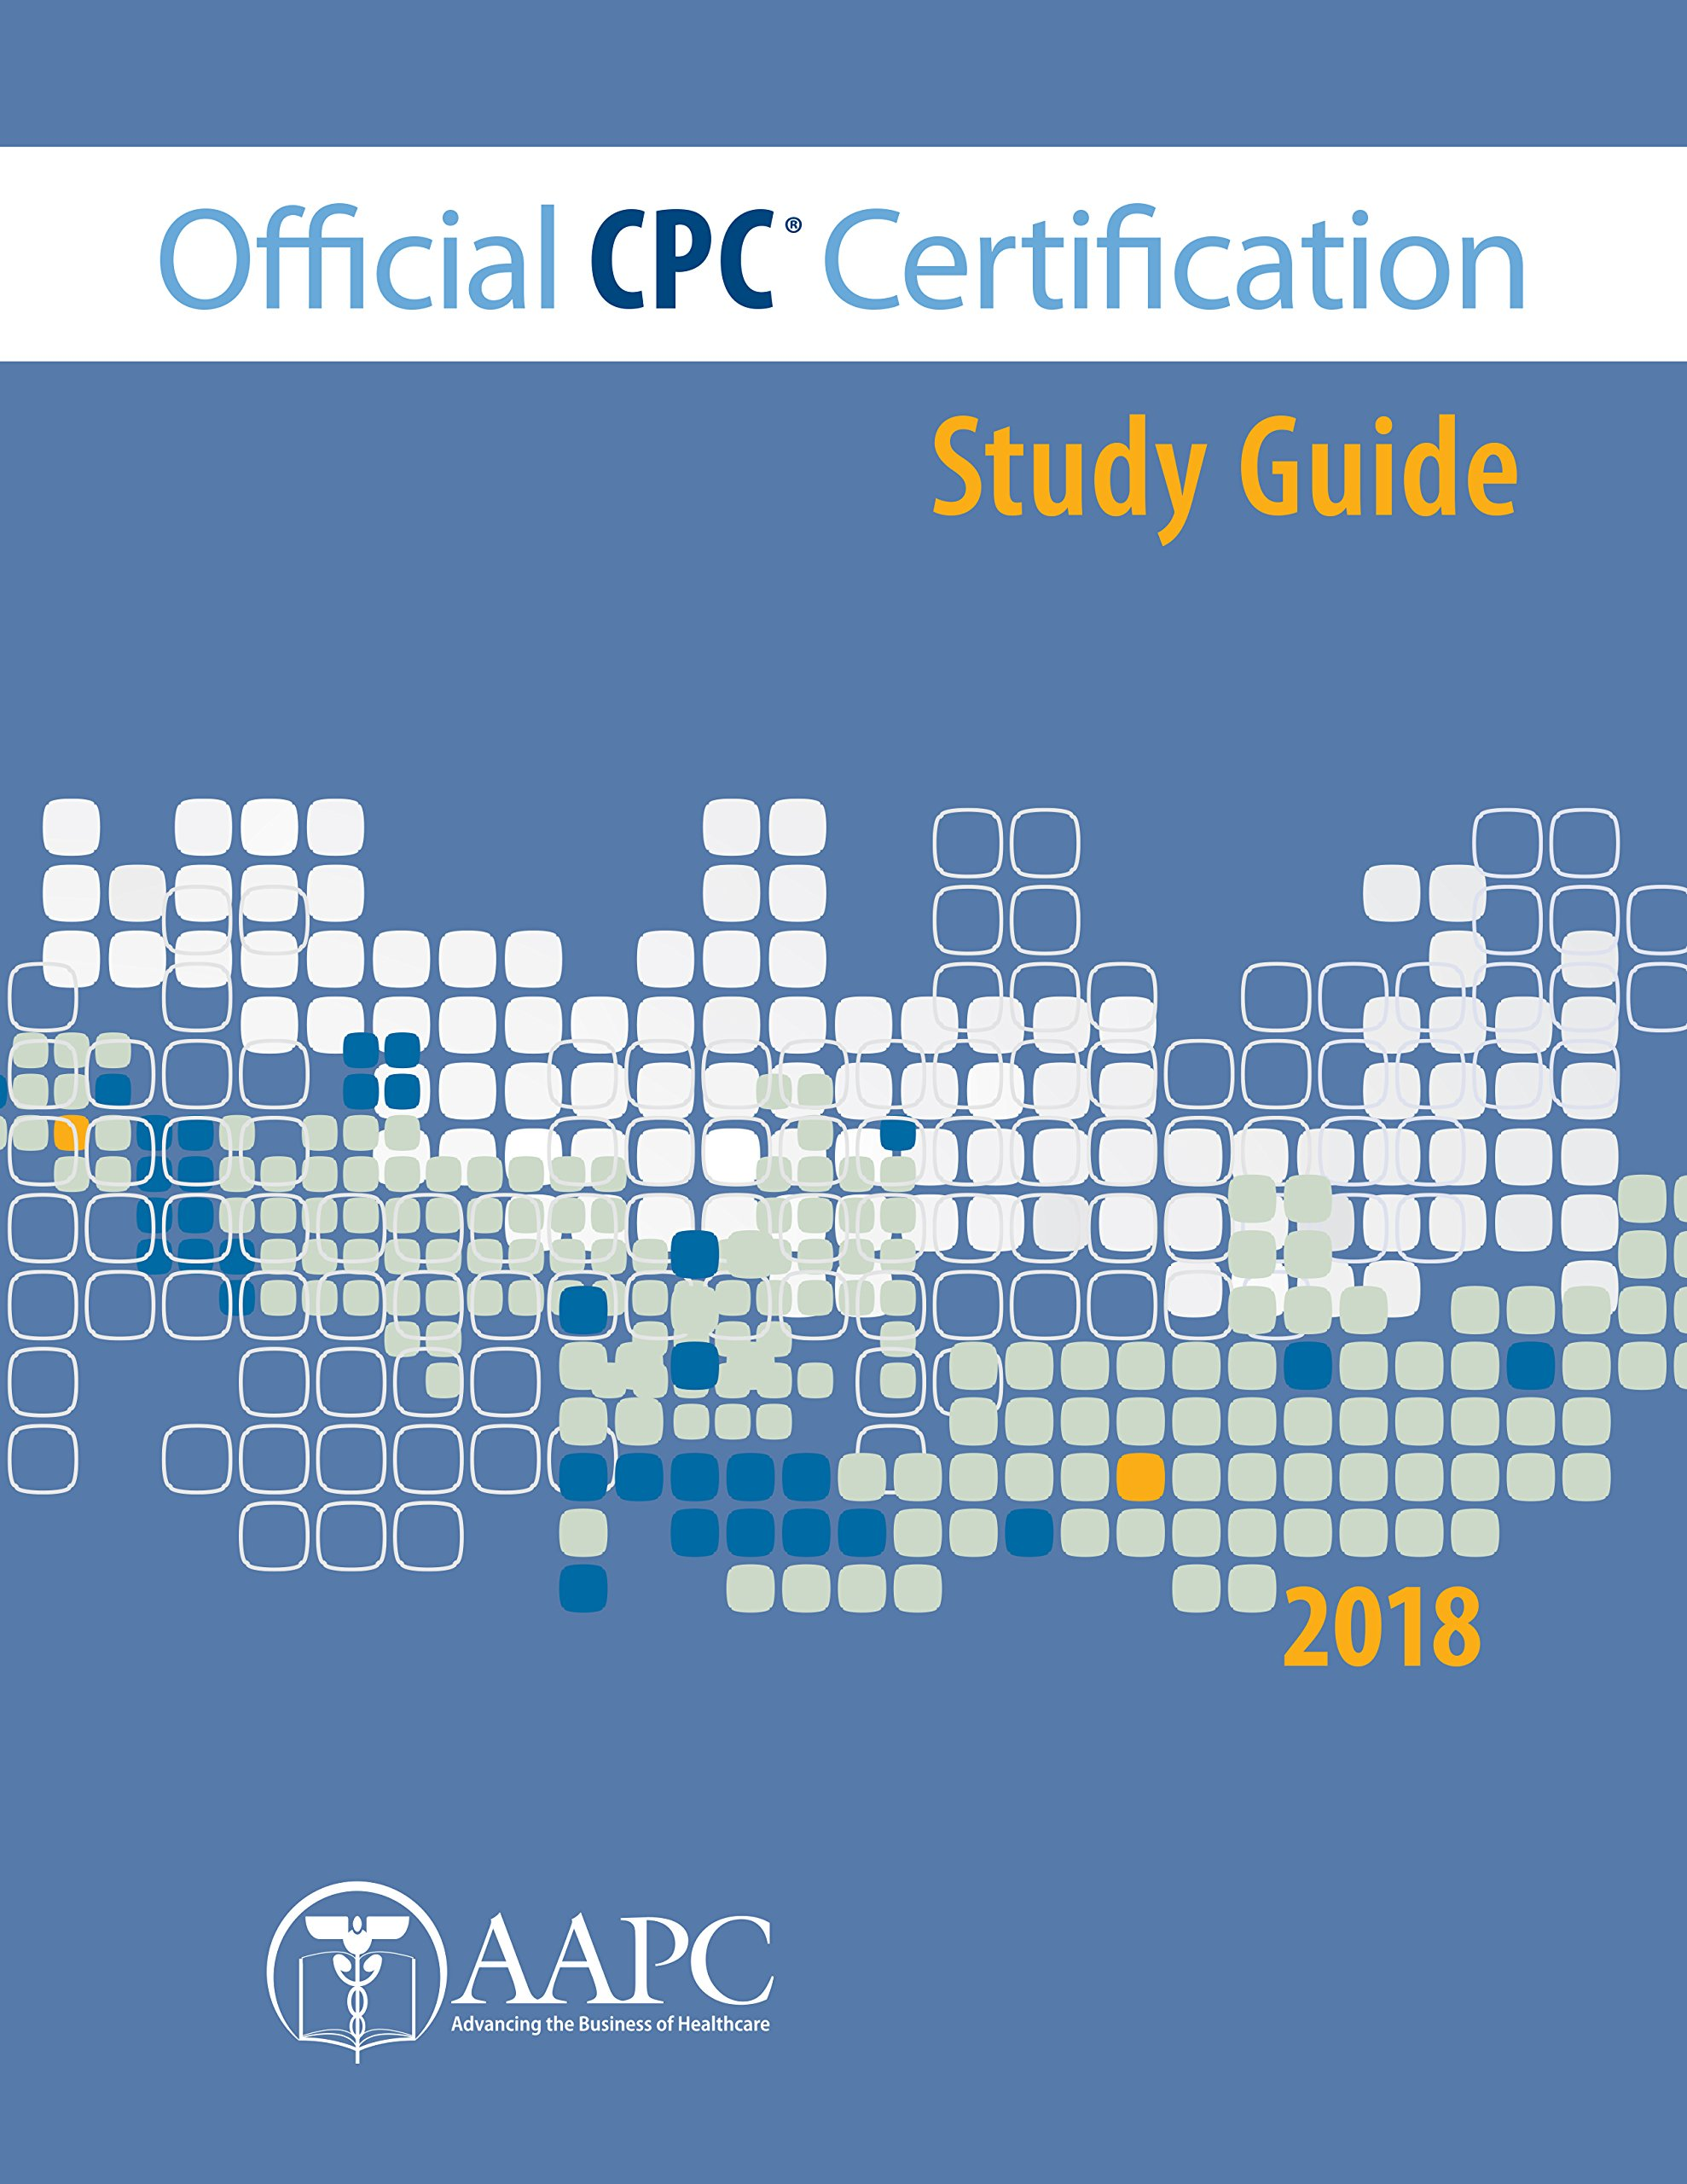 Official Cpc Certification 2018 Study Guide Aapc Brad Ericson